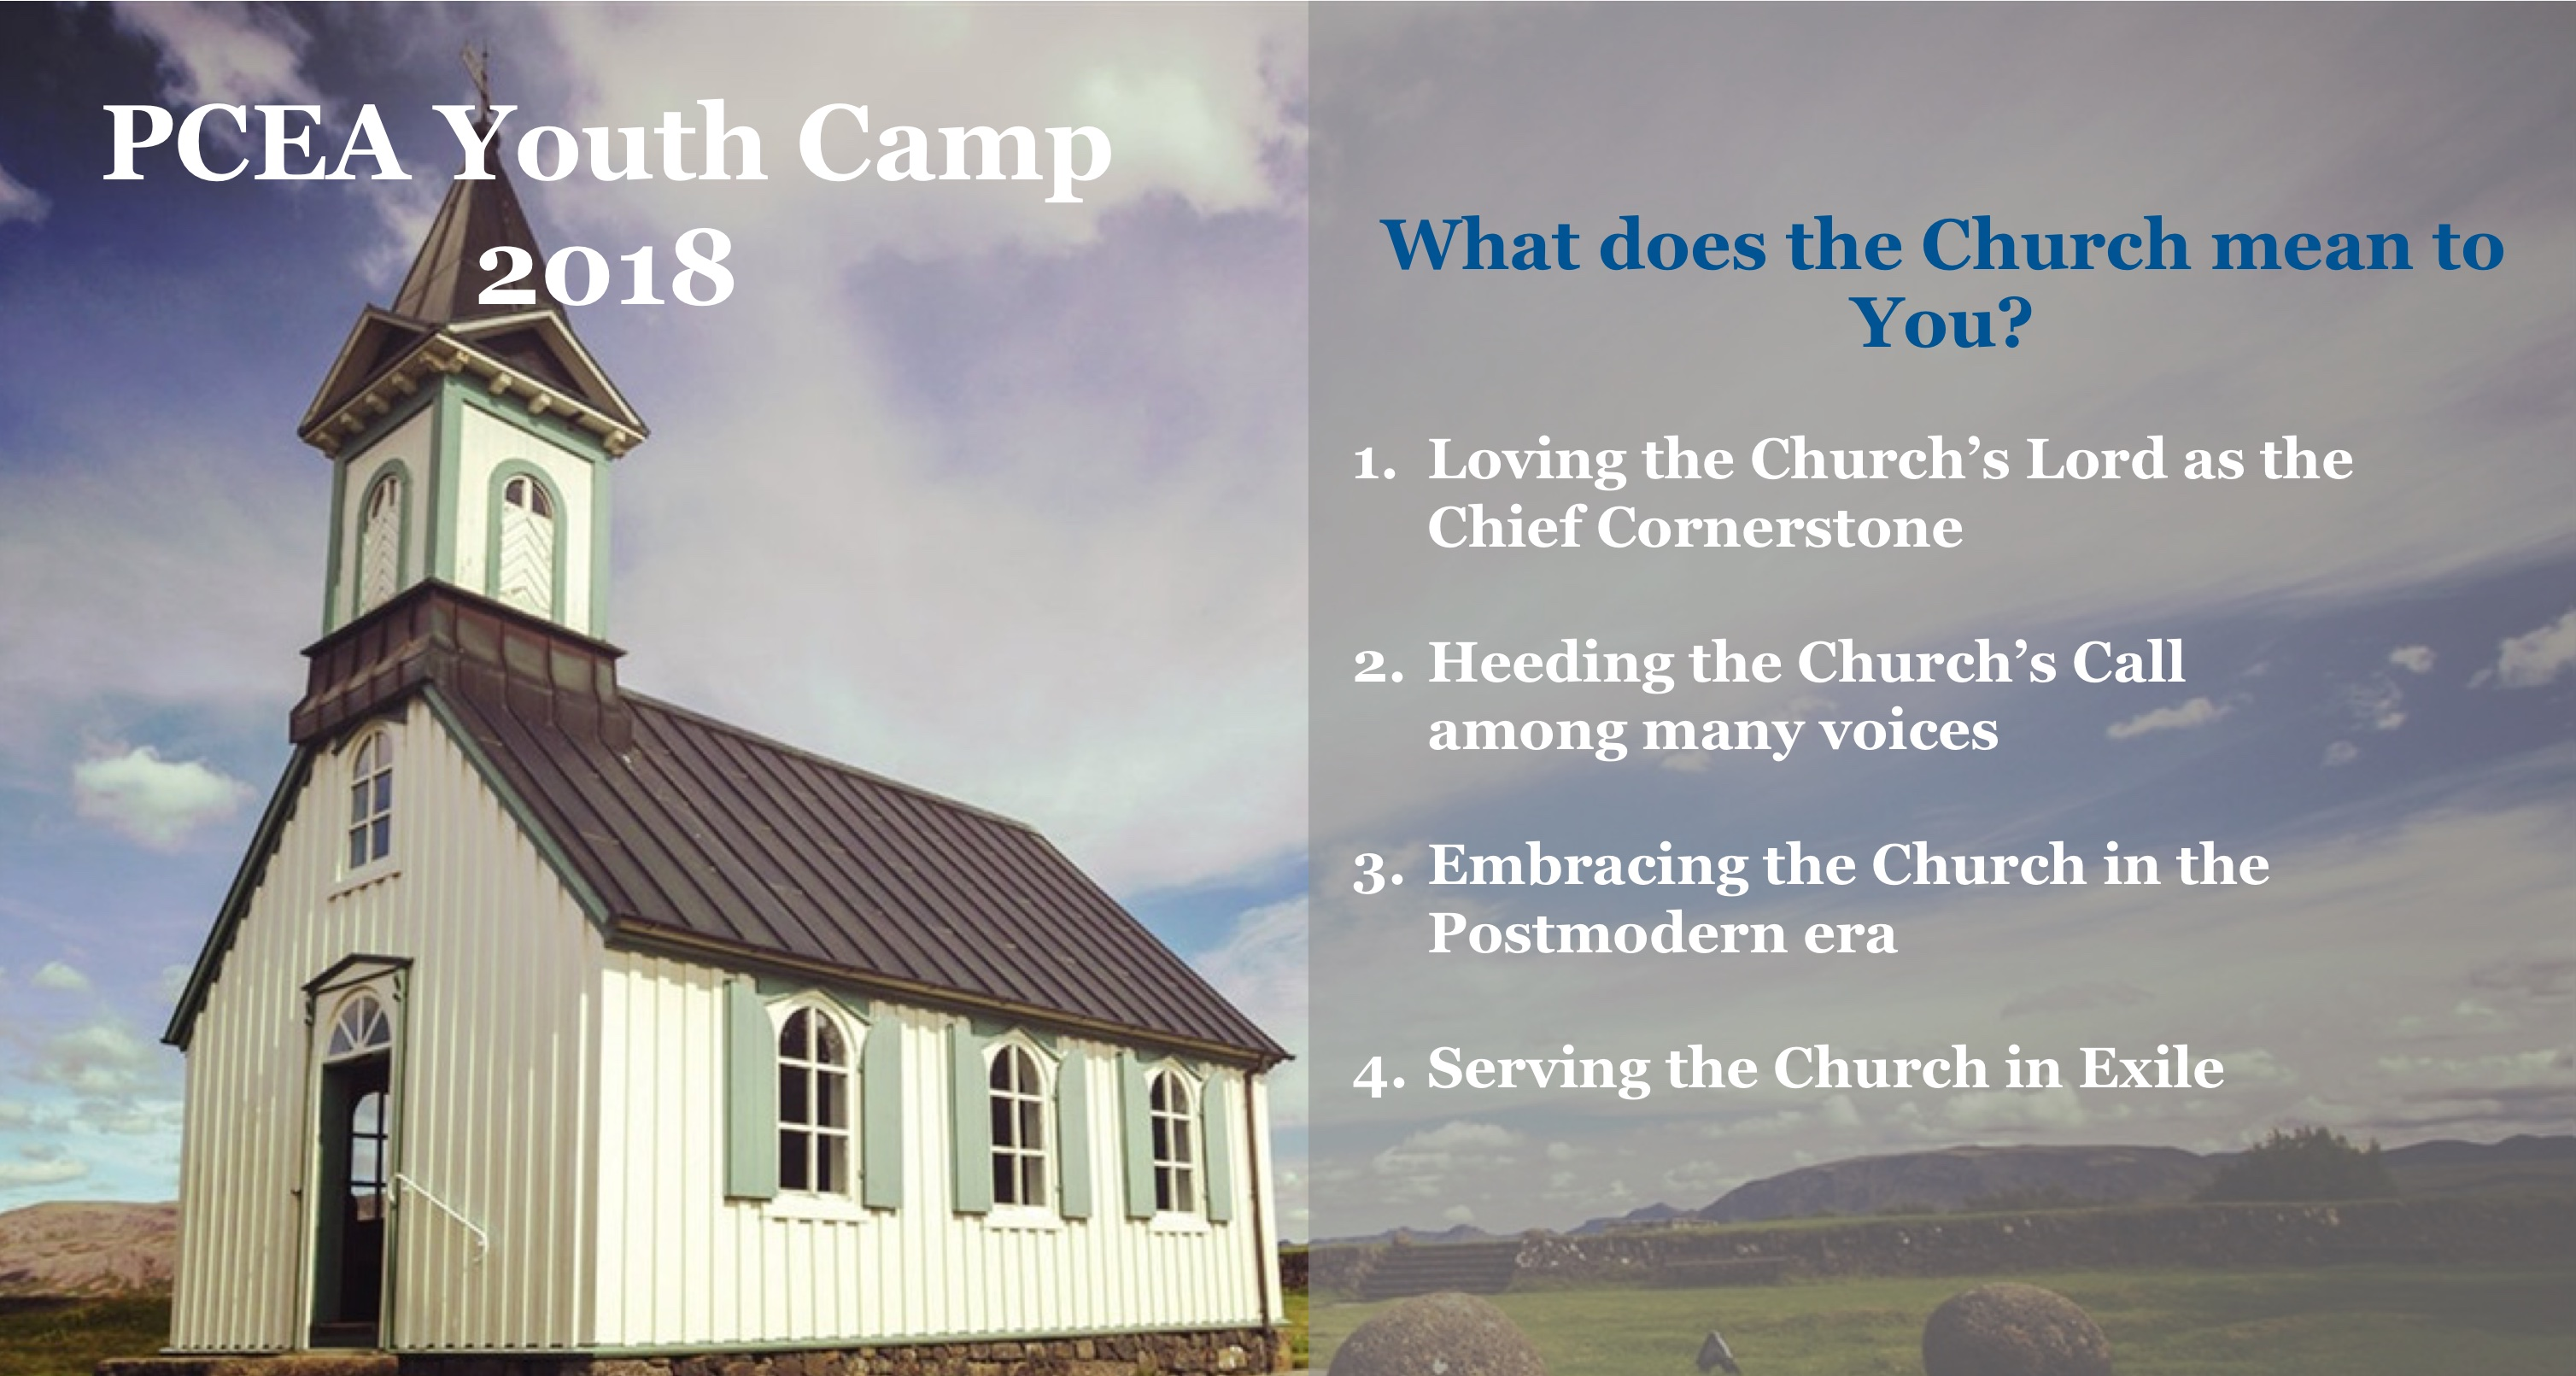 PCEA Youth Camp 2018